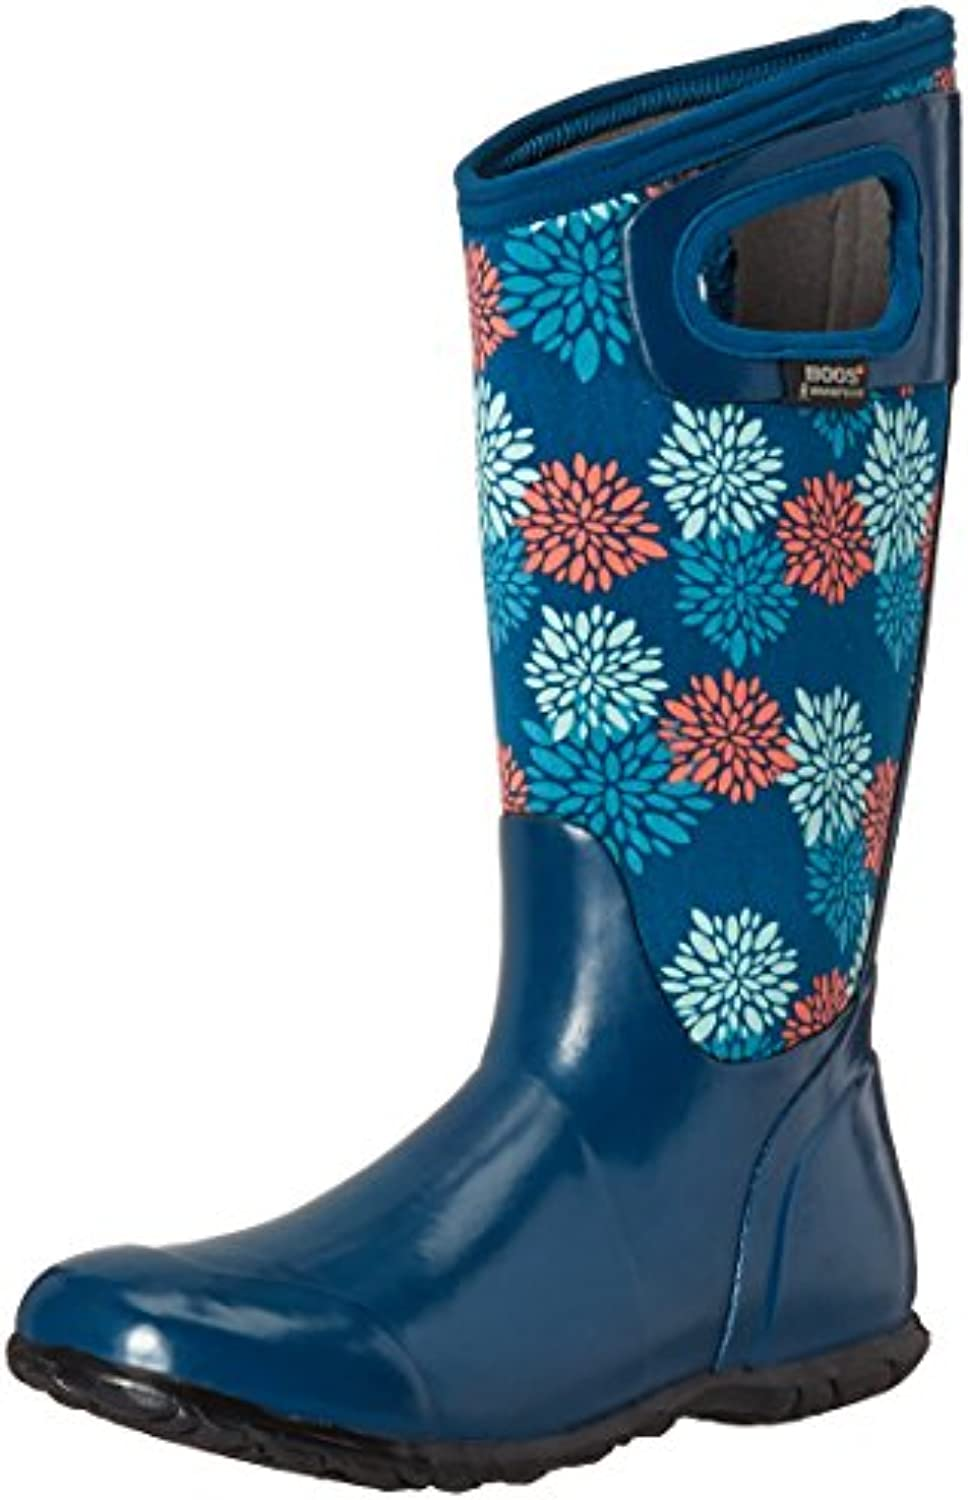 Bogs Ladies North Hampton Pompons Blue Insulated Warm Wellington Boot 72040-UK 8 (EU 42)